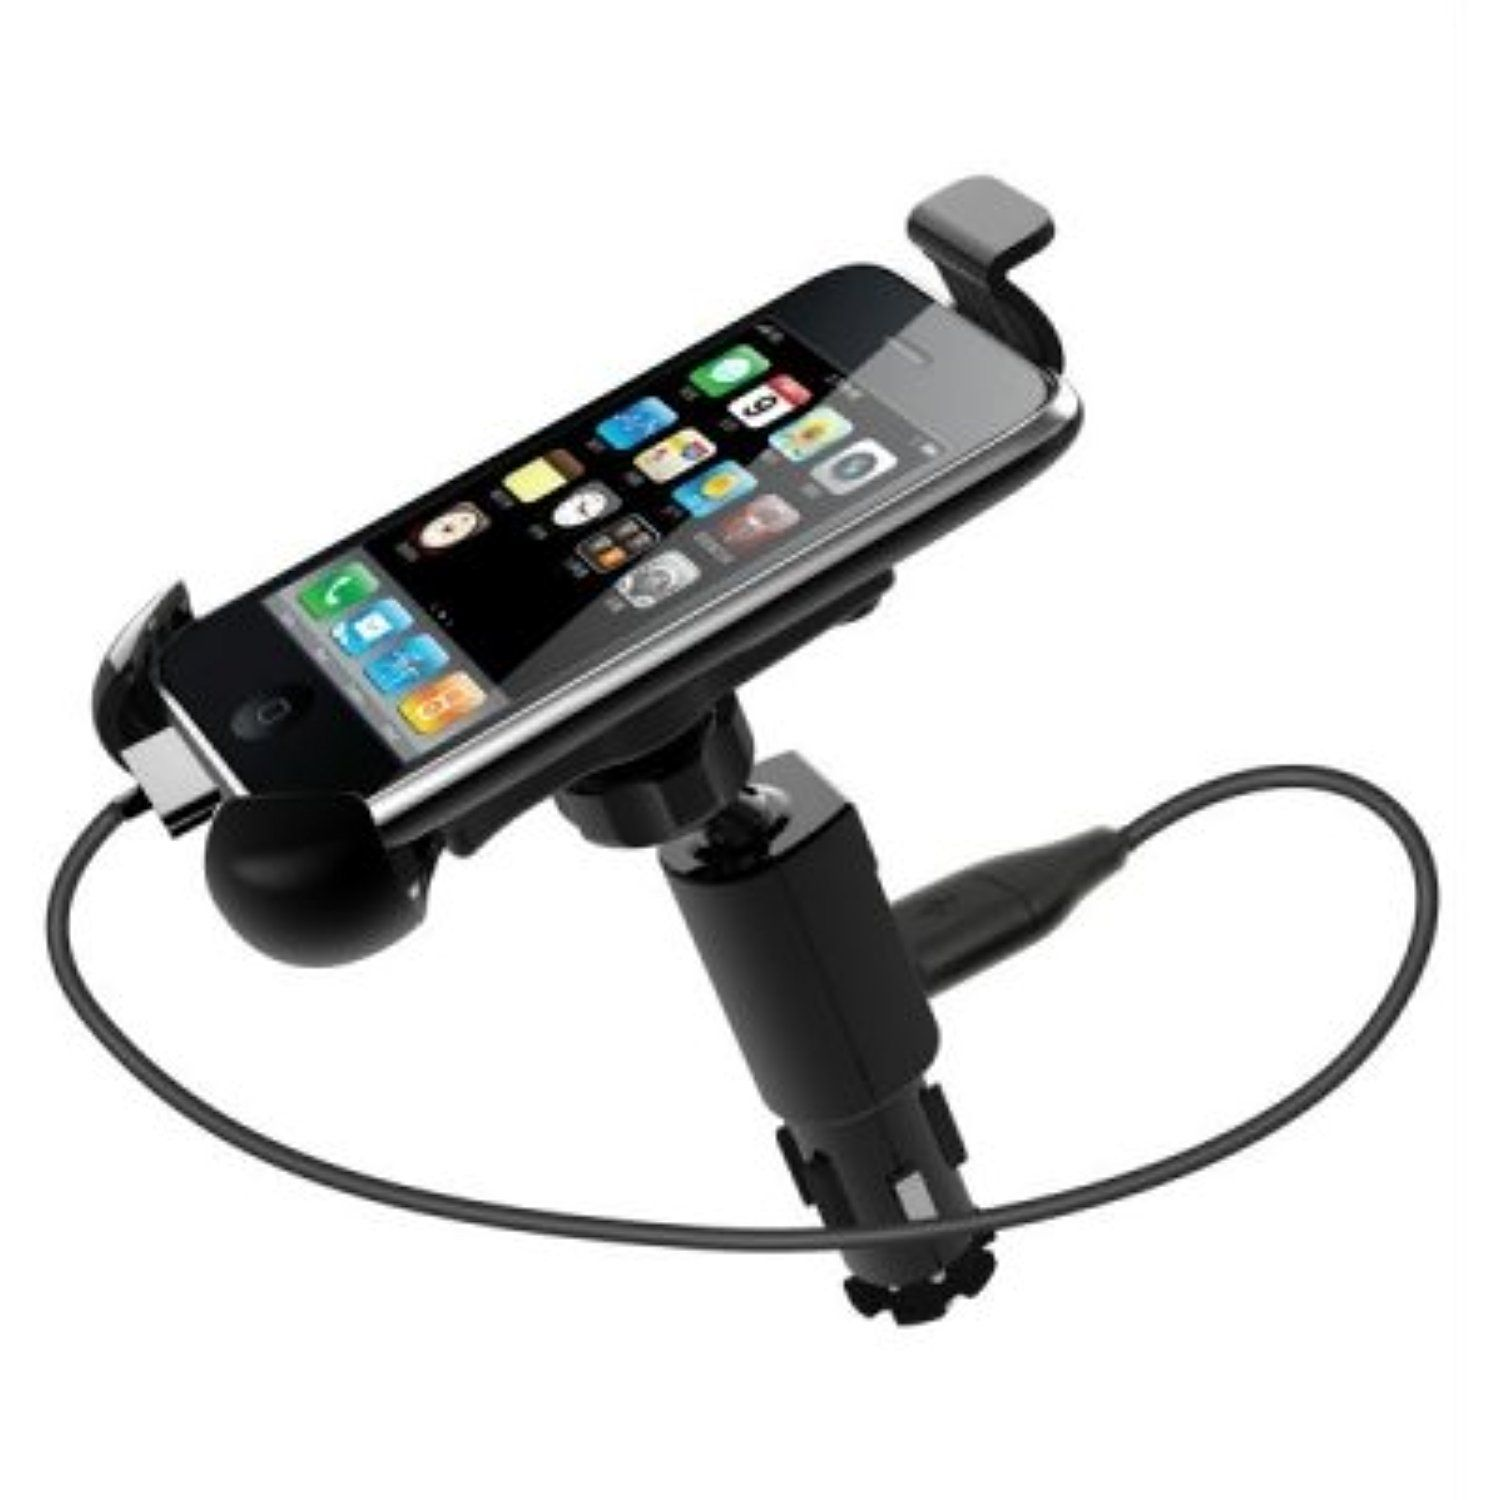 medium resolution of car gadgets 360 degree rotary universal car mounter holder cigarette lighter charger for smart phone black click image to review more details